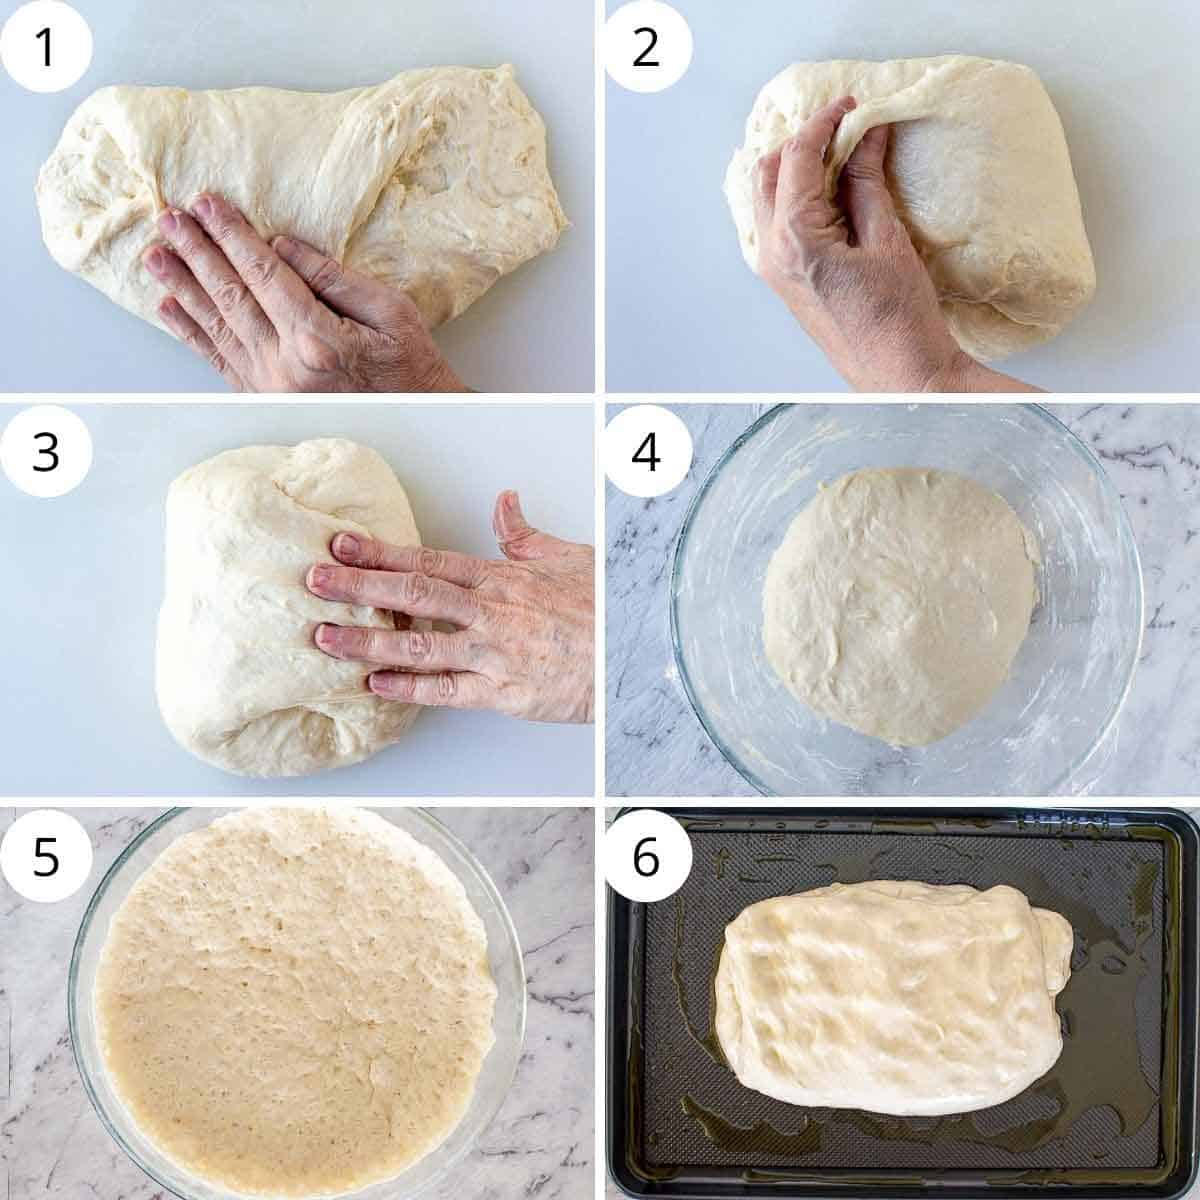 6-step photo collage showing folding and proofing of ligurian focaccia.